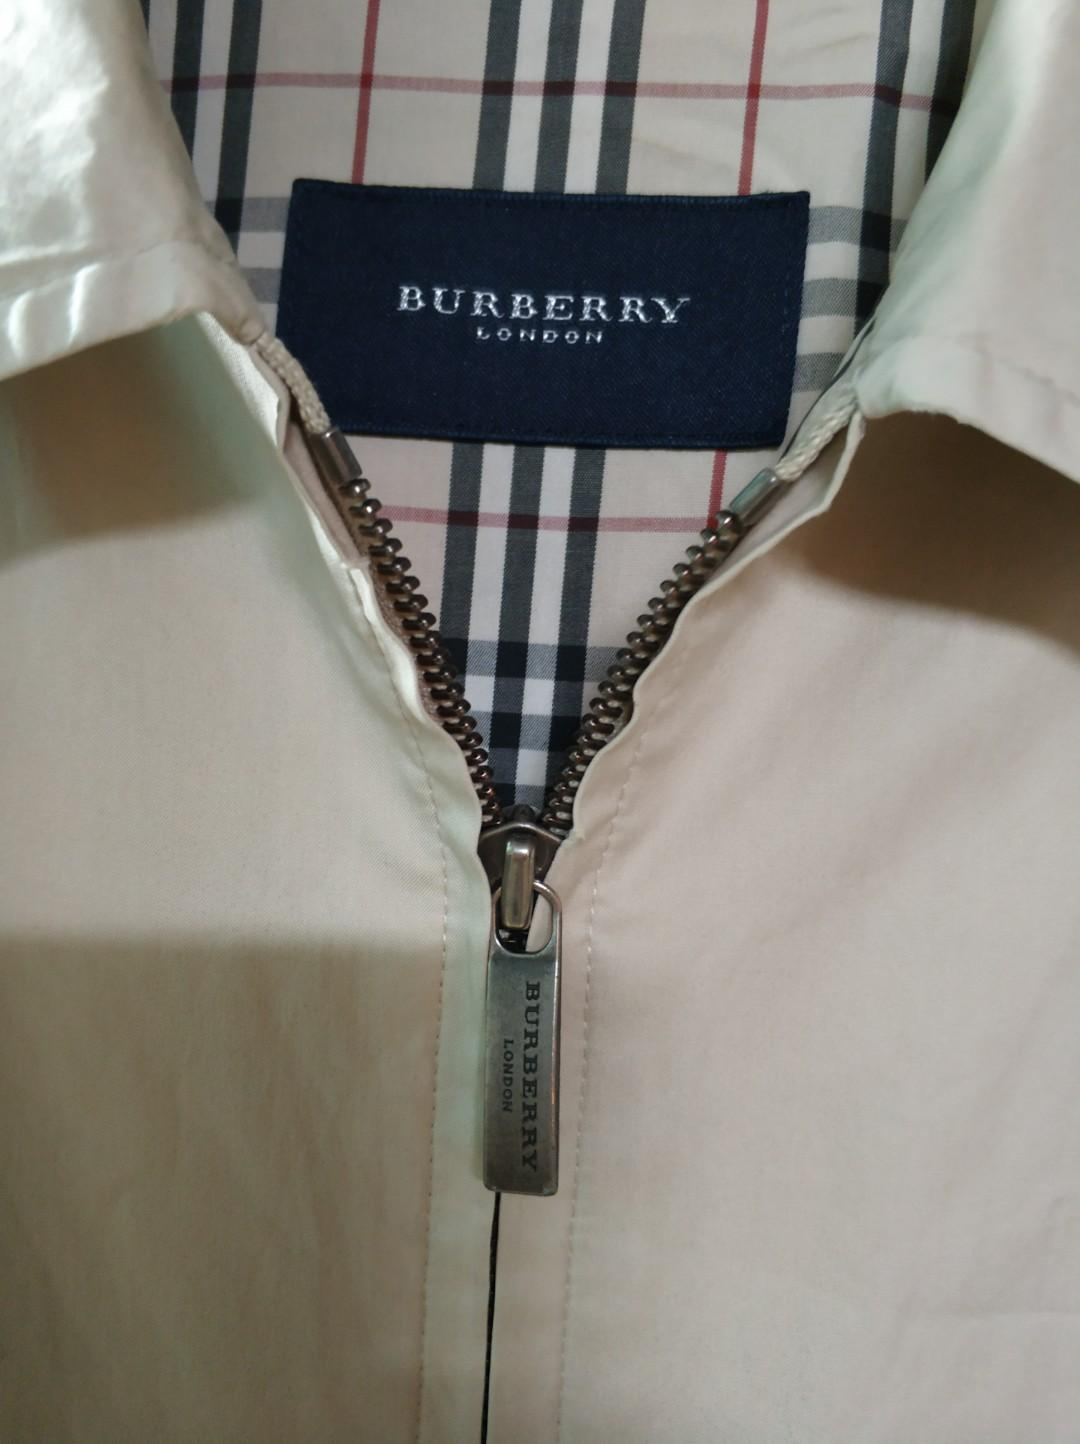 Burberry work jacket / harrington / nova / docmart